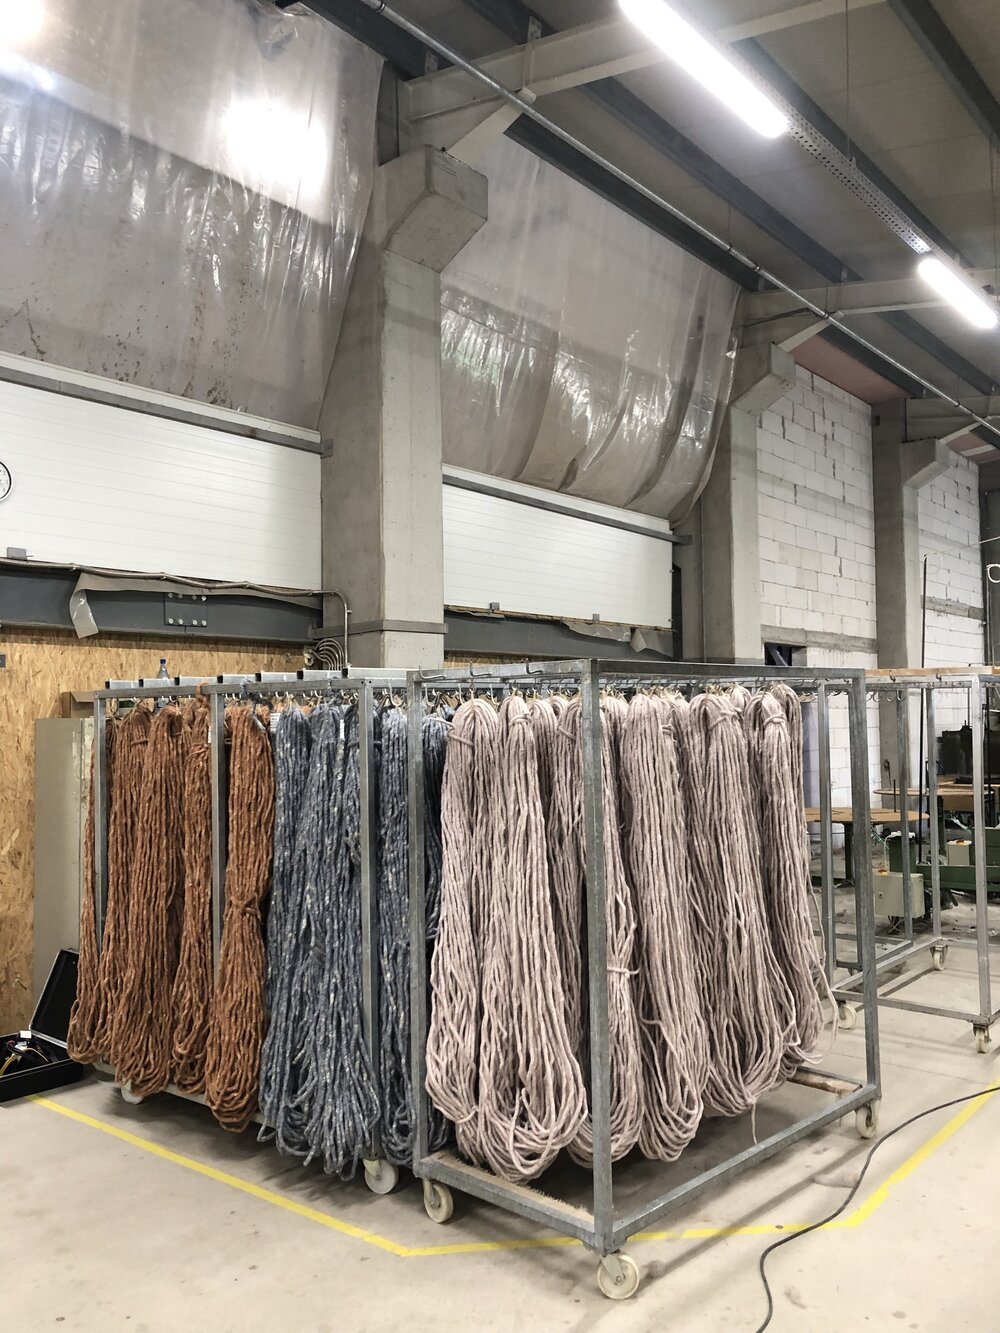 Wool being hung to dry